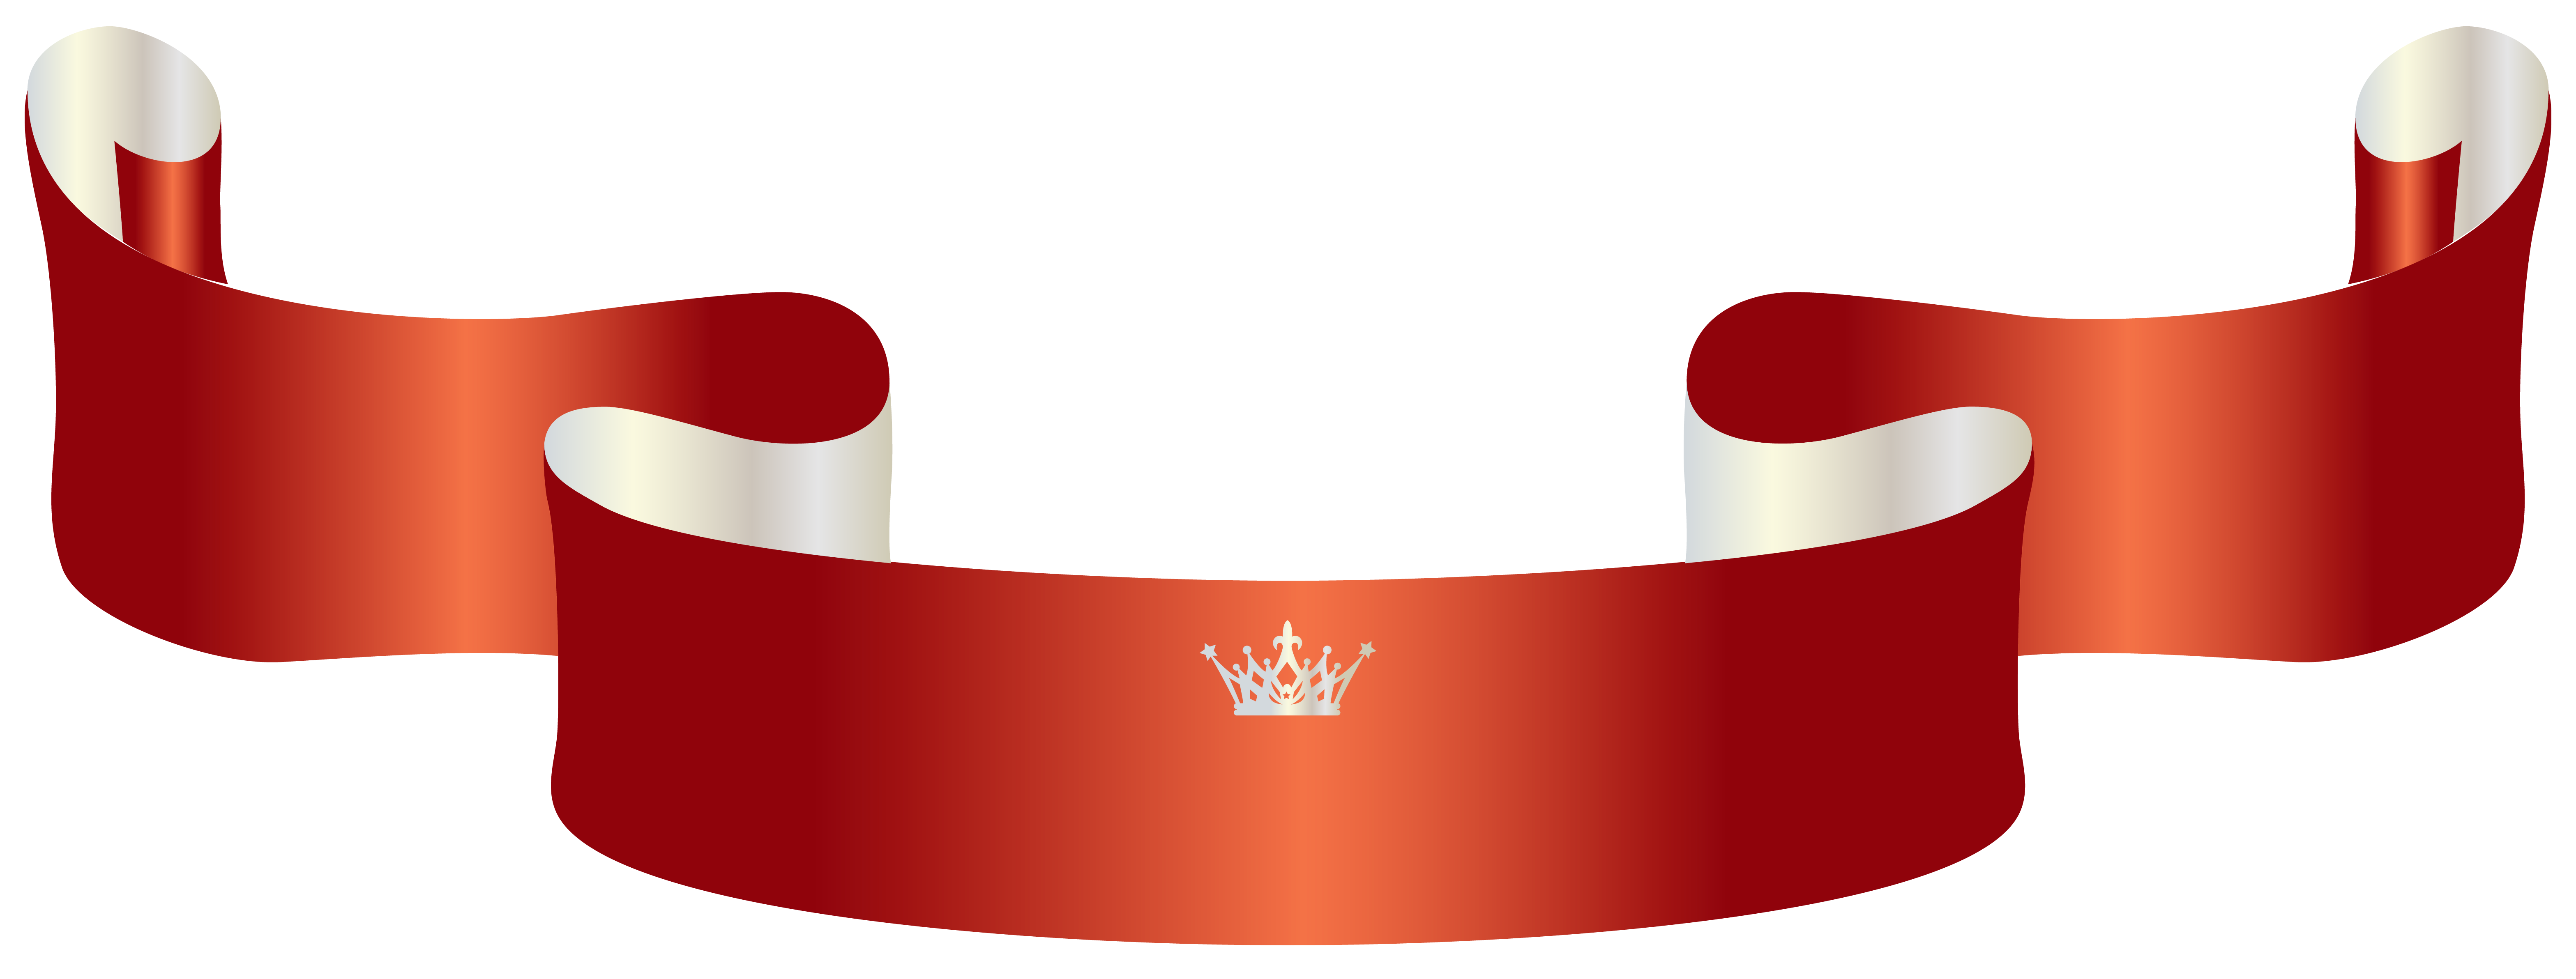 Transparent flower crown png. Red banner with clipart